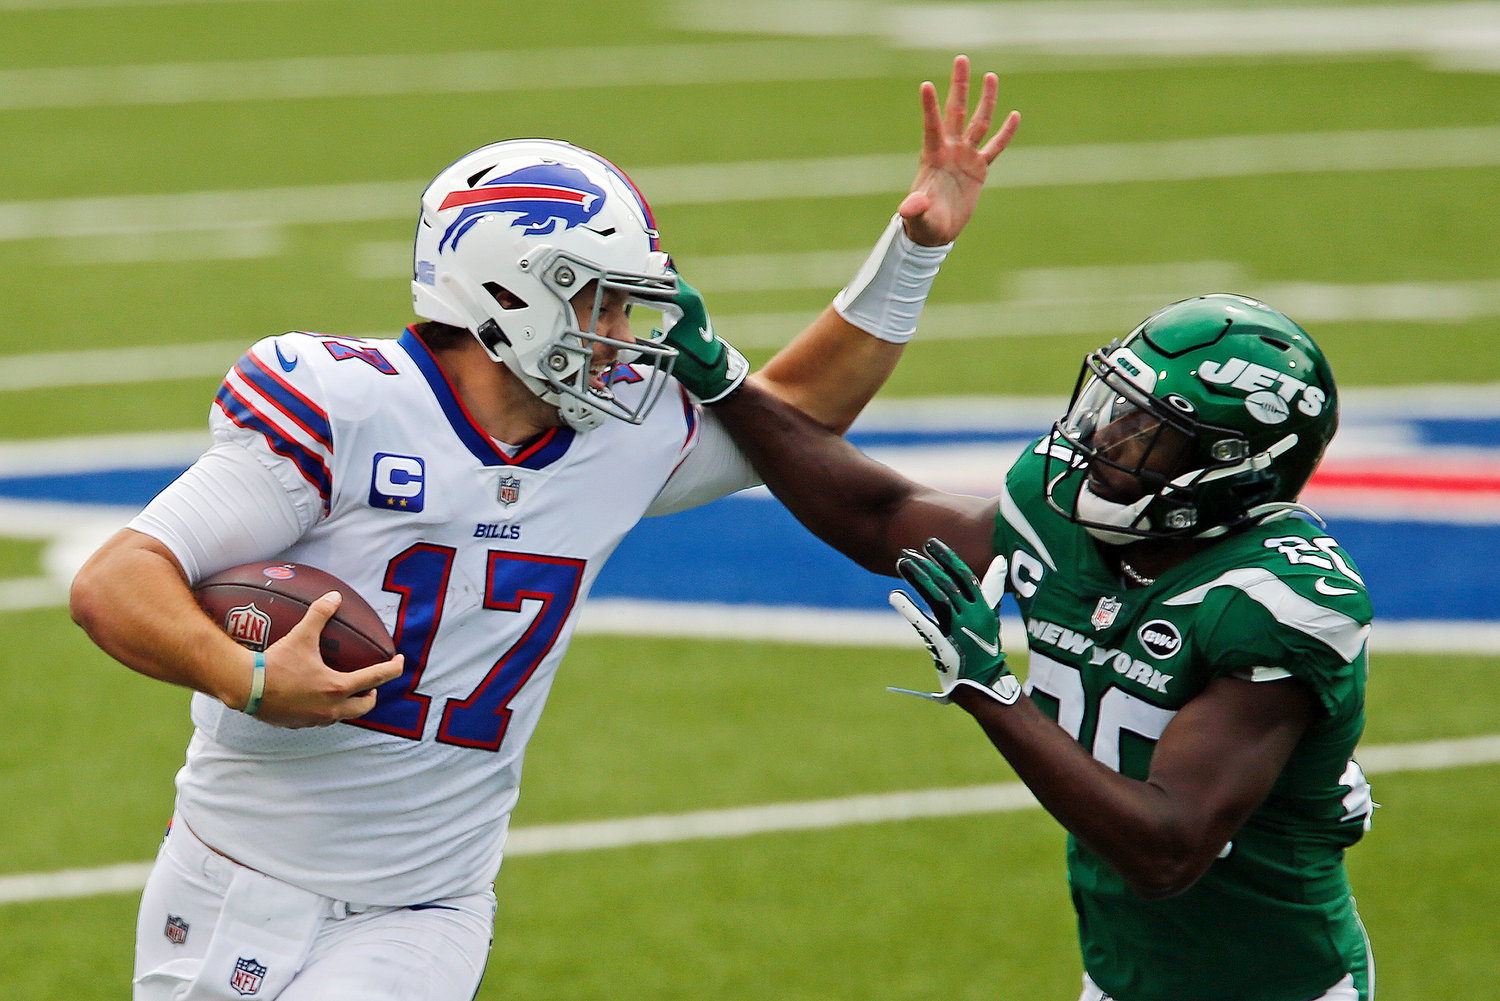 Buffalo Bills quarterback Josh Allen (17) is pushed out of bounds by New York Jets free safety Marcus Maye (20) during the first half of an NFL football game in Orchard Park, N.Y., Sunday, Sept. 13, 2020. (AP Photo/John Munson)